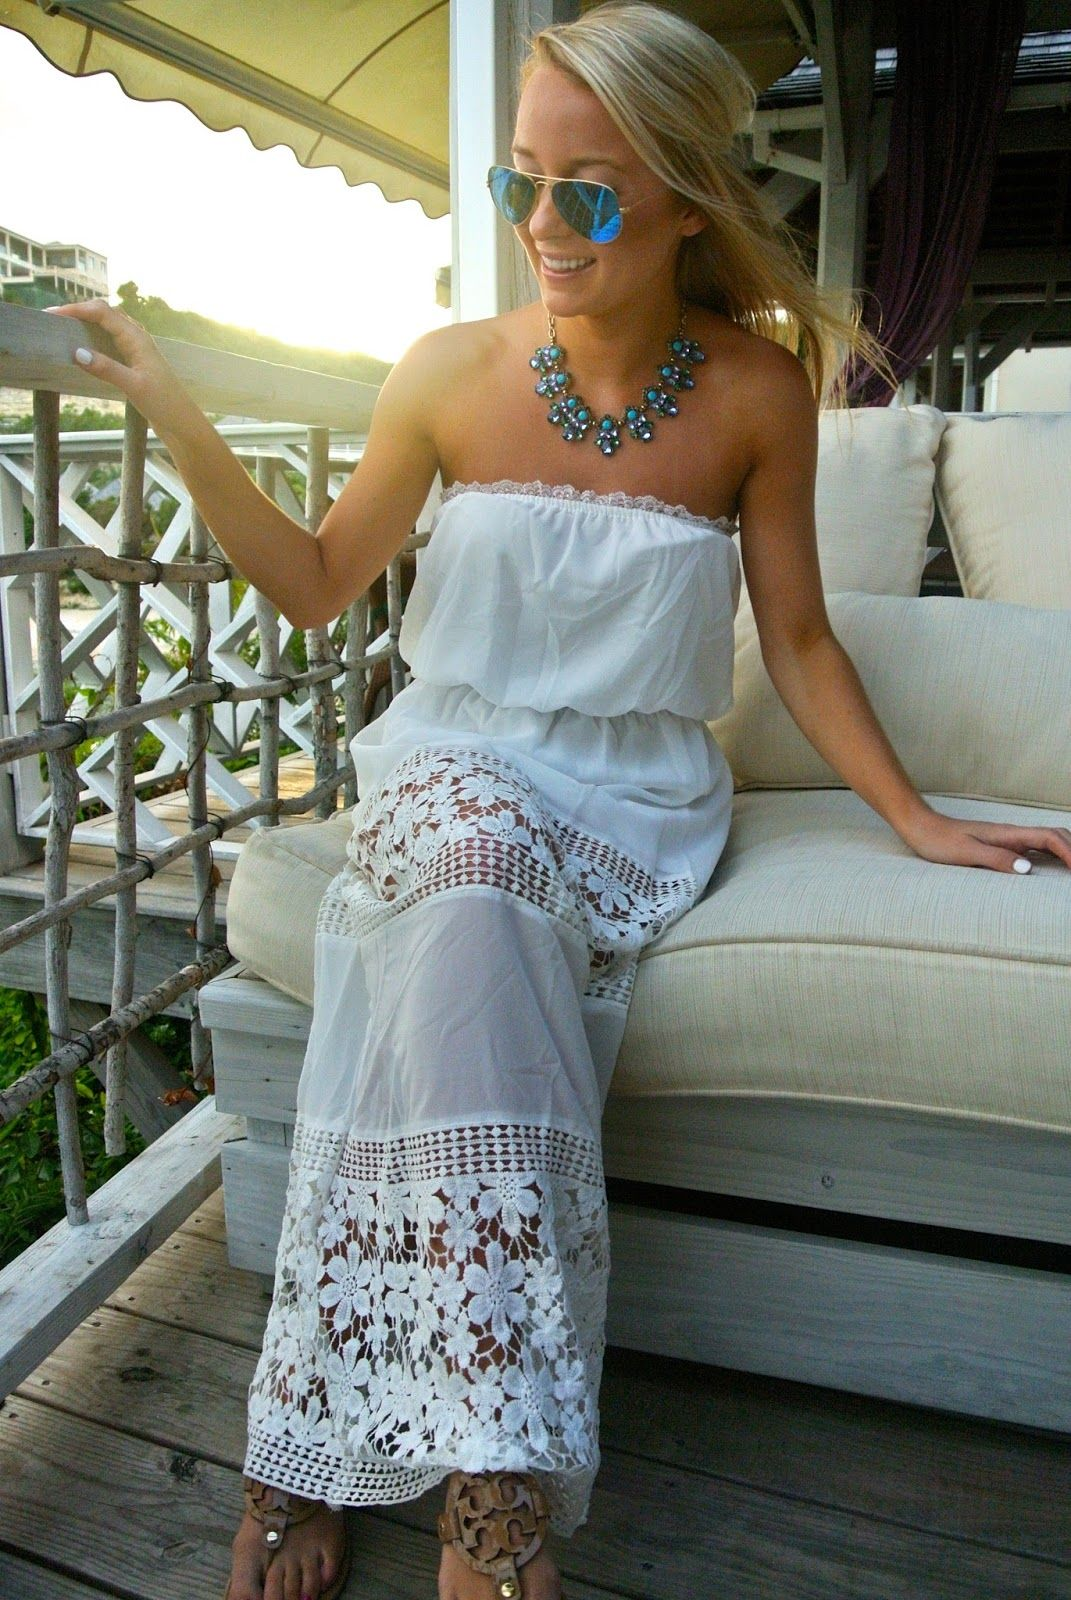 81f6965d2c02 White Crochet Maxi Dress // Antigua vacation outfit //  www.amybelievesinpink.com